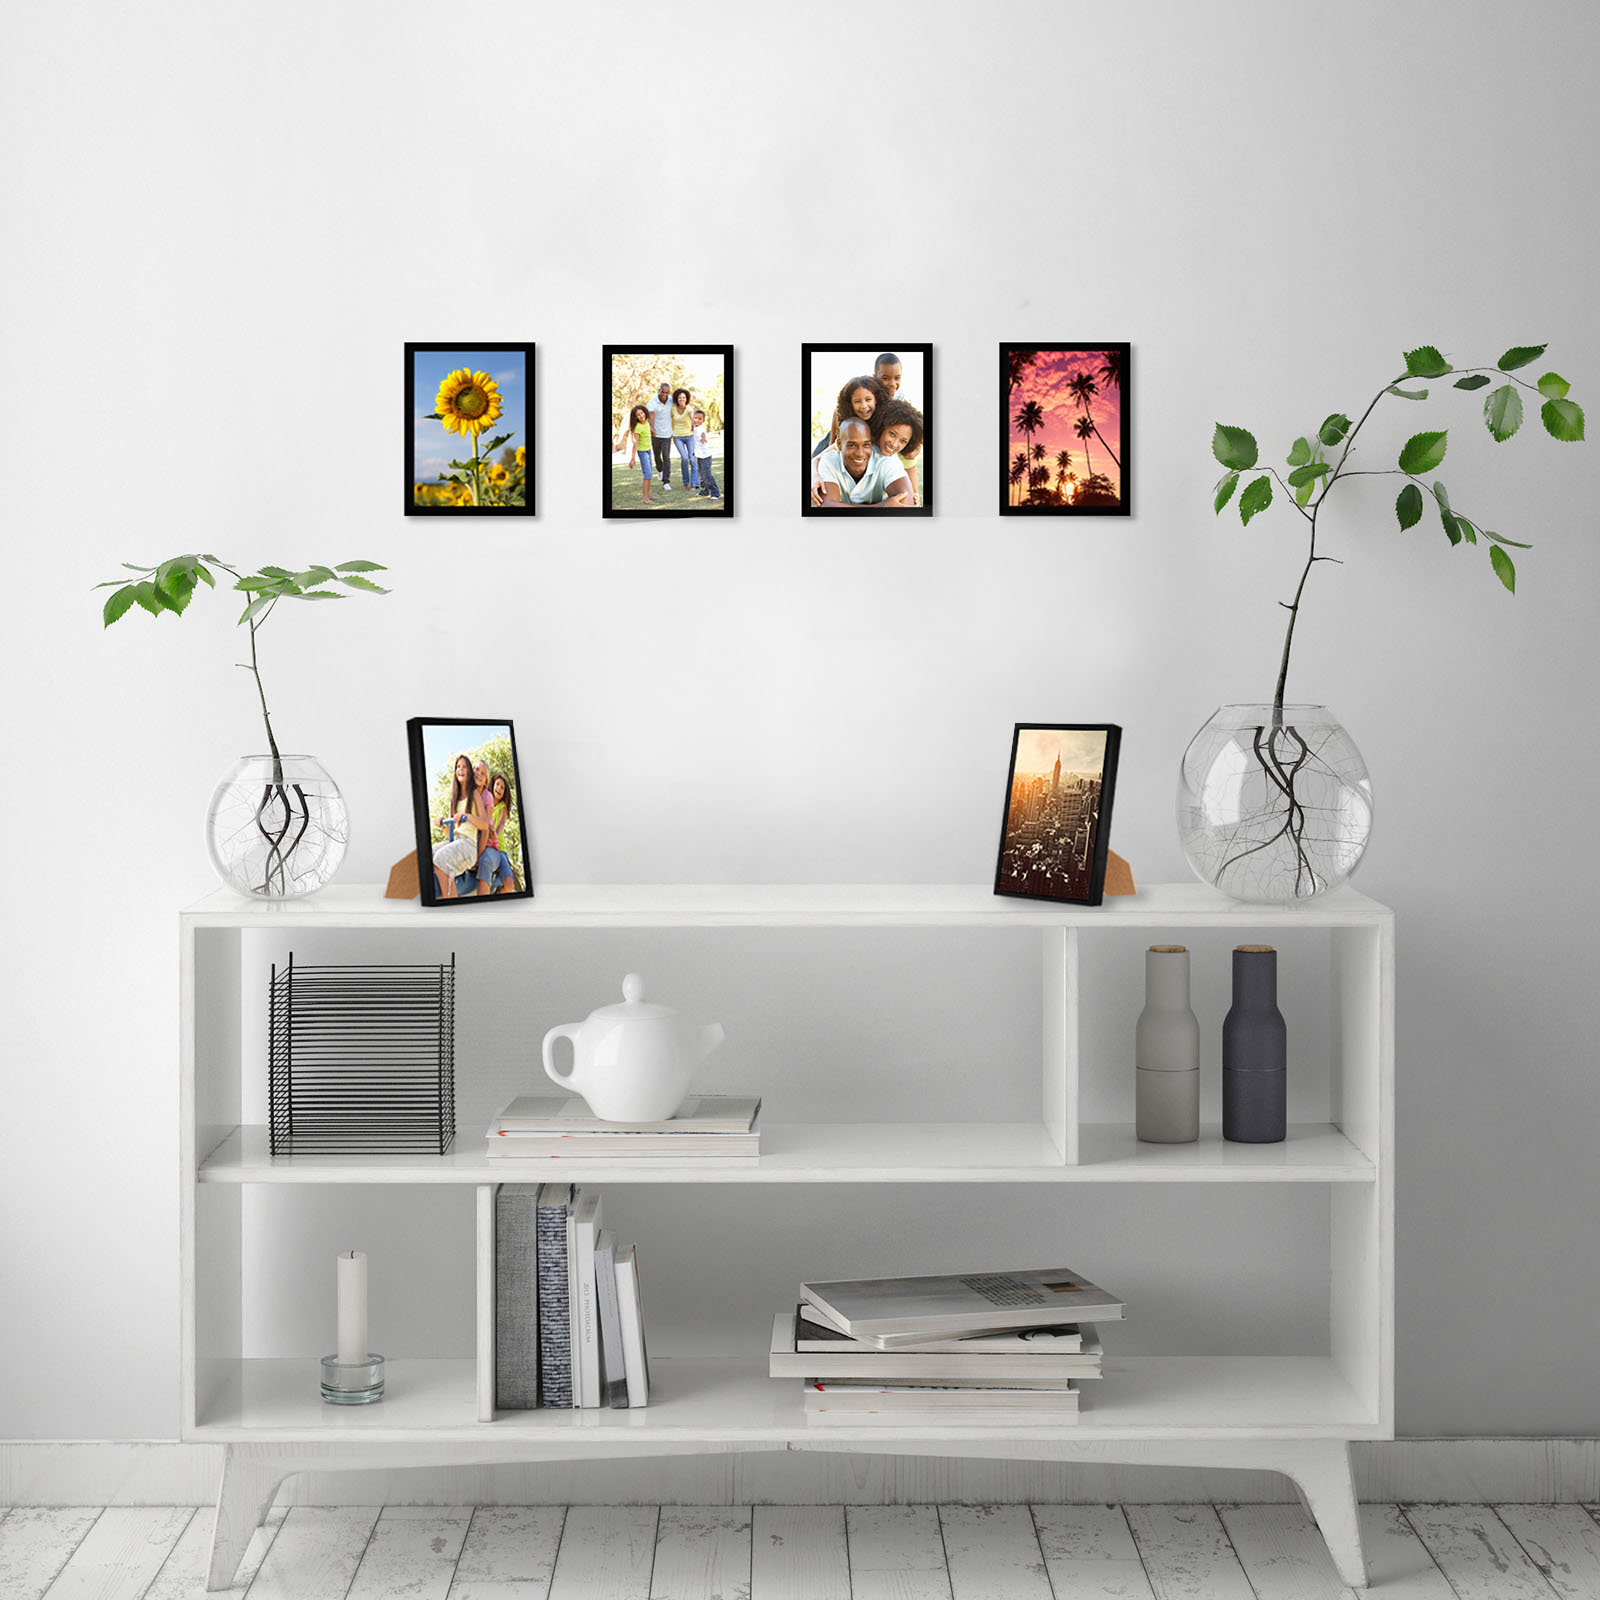 miniature 41 - Americanflat Picture Frame Black Plastic 4x6 5x7 8x10 Wall Tabletop 6 or 12 Pack